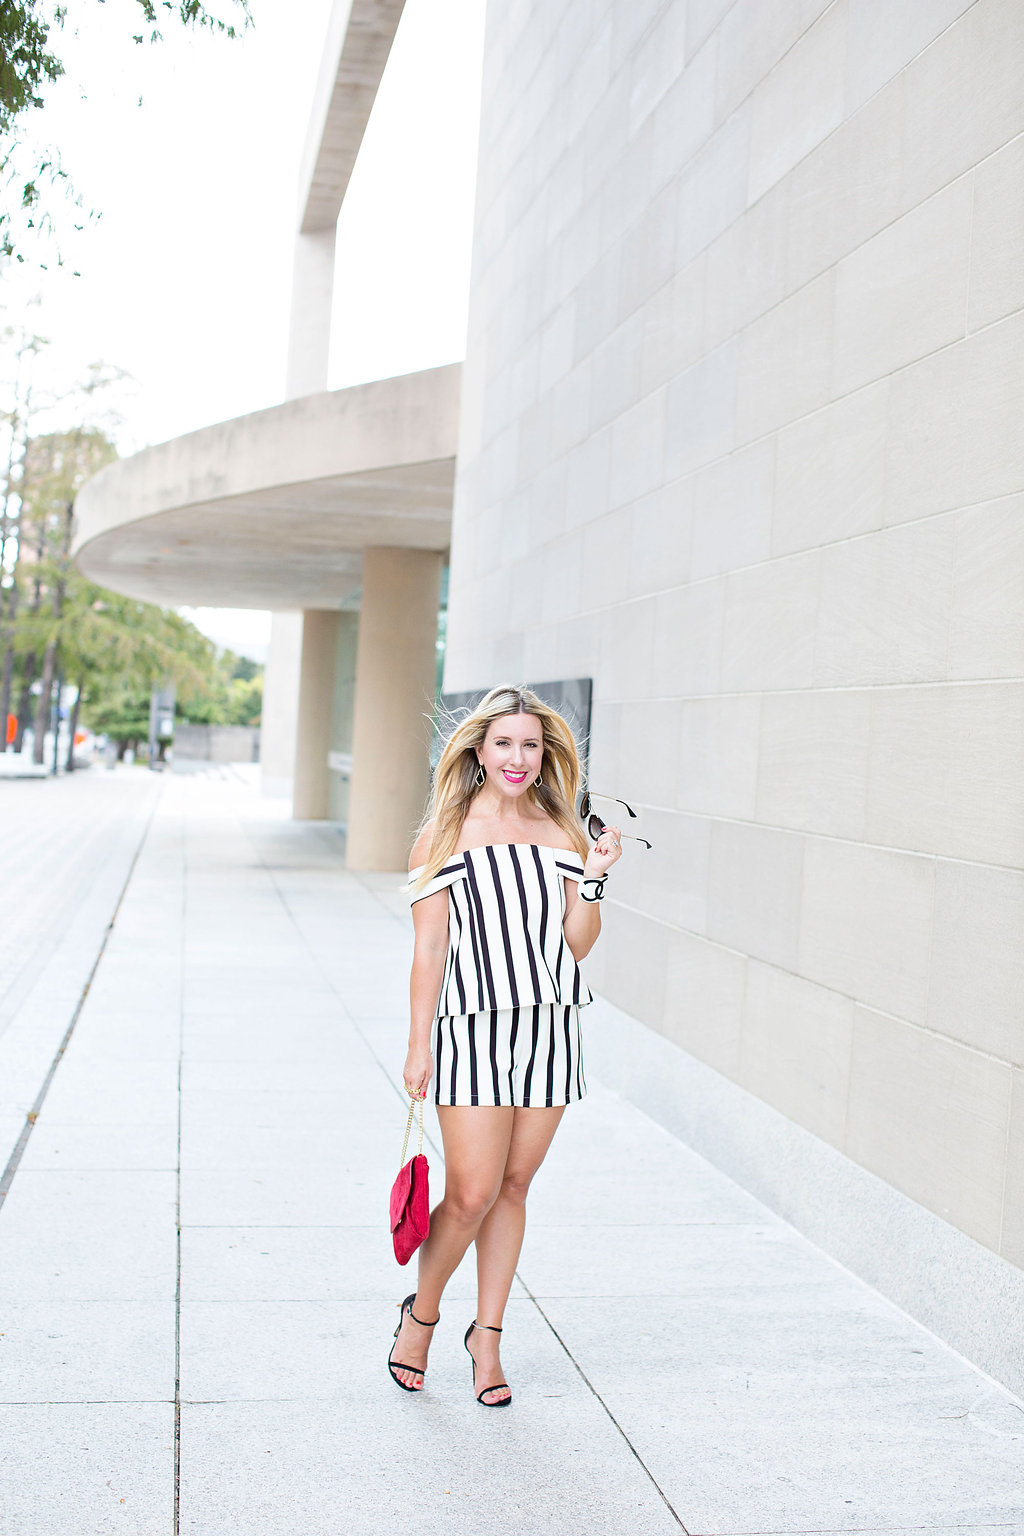 Topshop Romper - Dallas TX - Fashion Blogger - Dallas TX